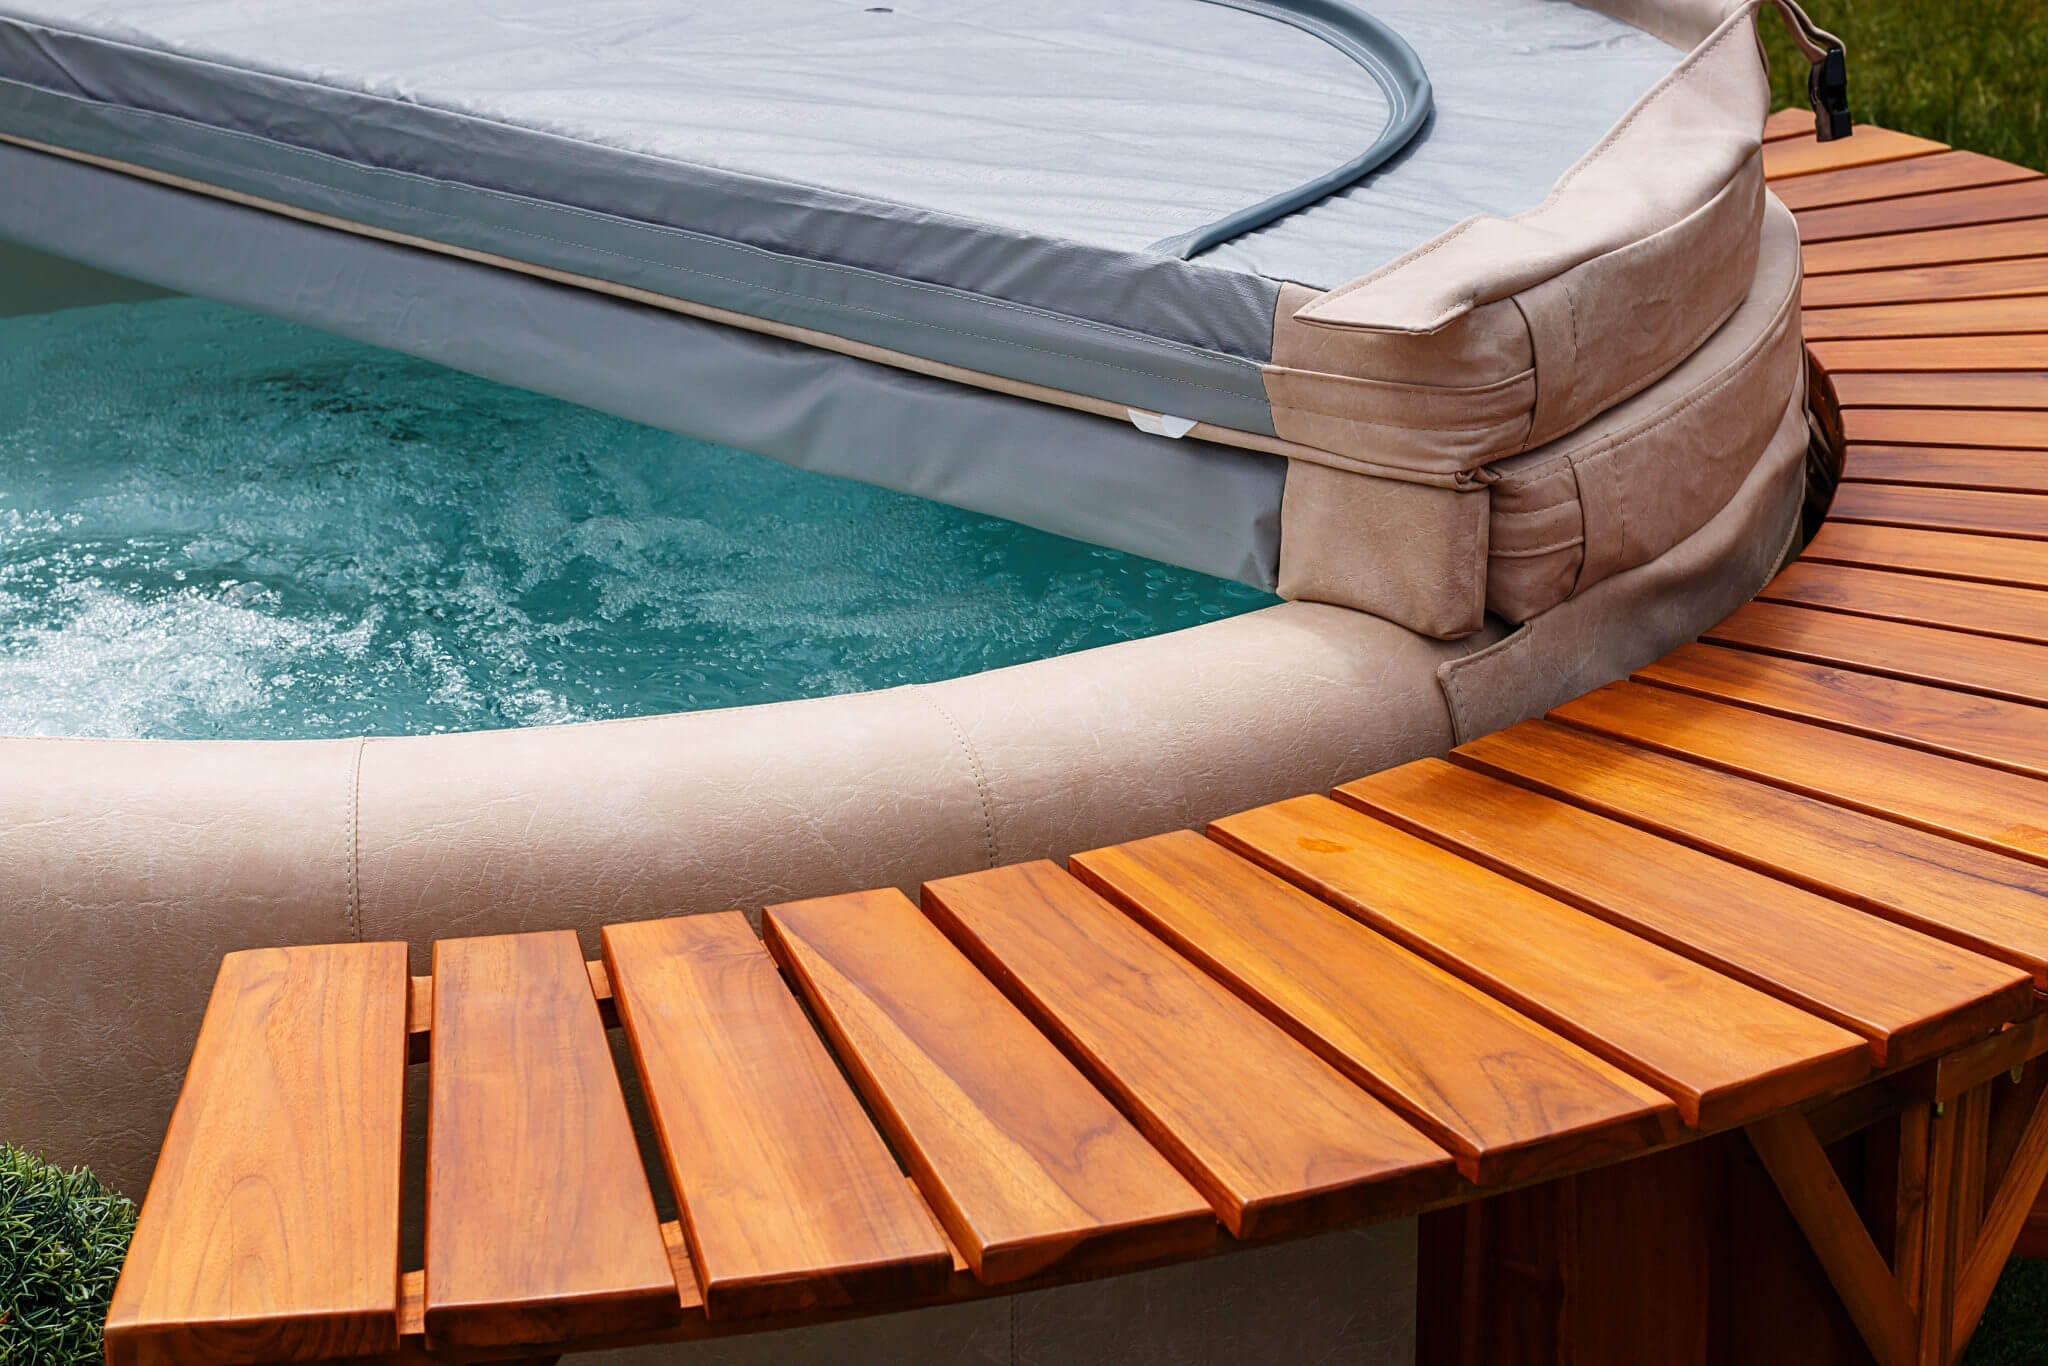 How to Get Rid of Hot Tub Slime